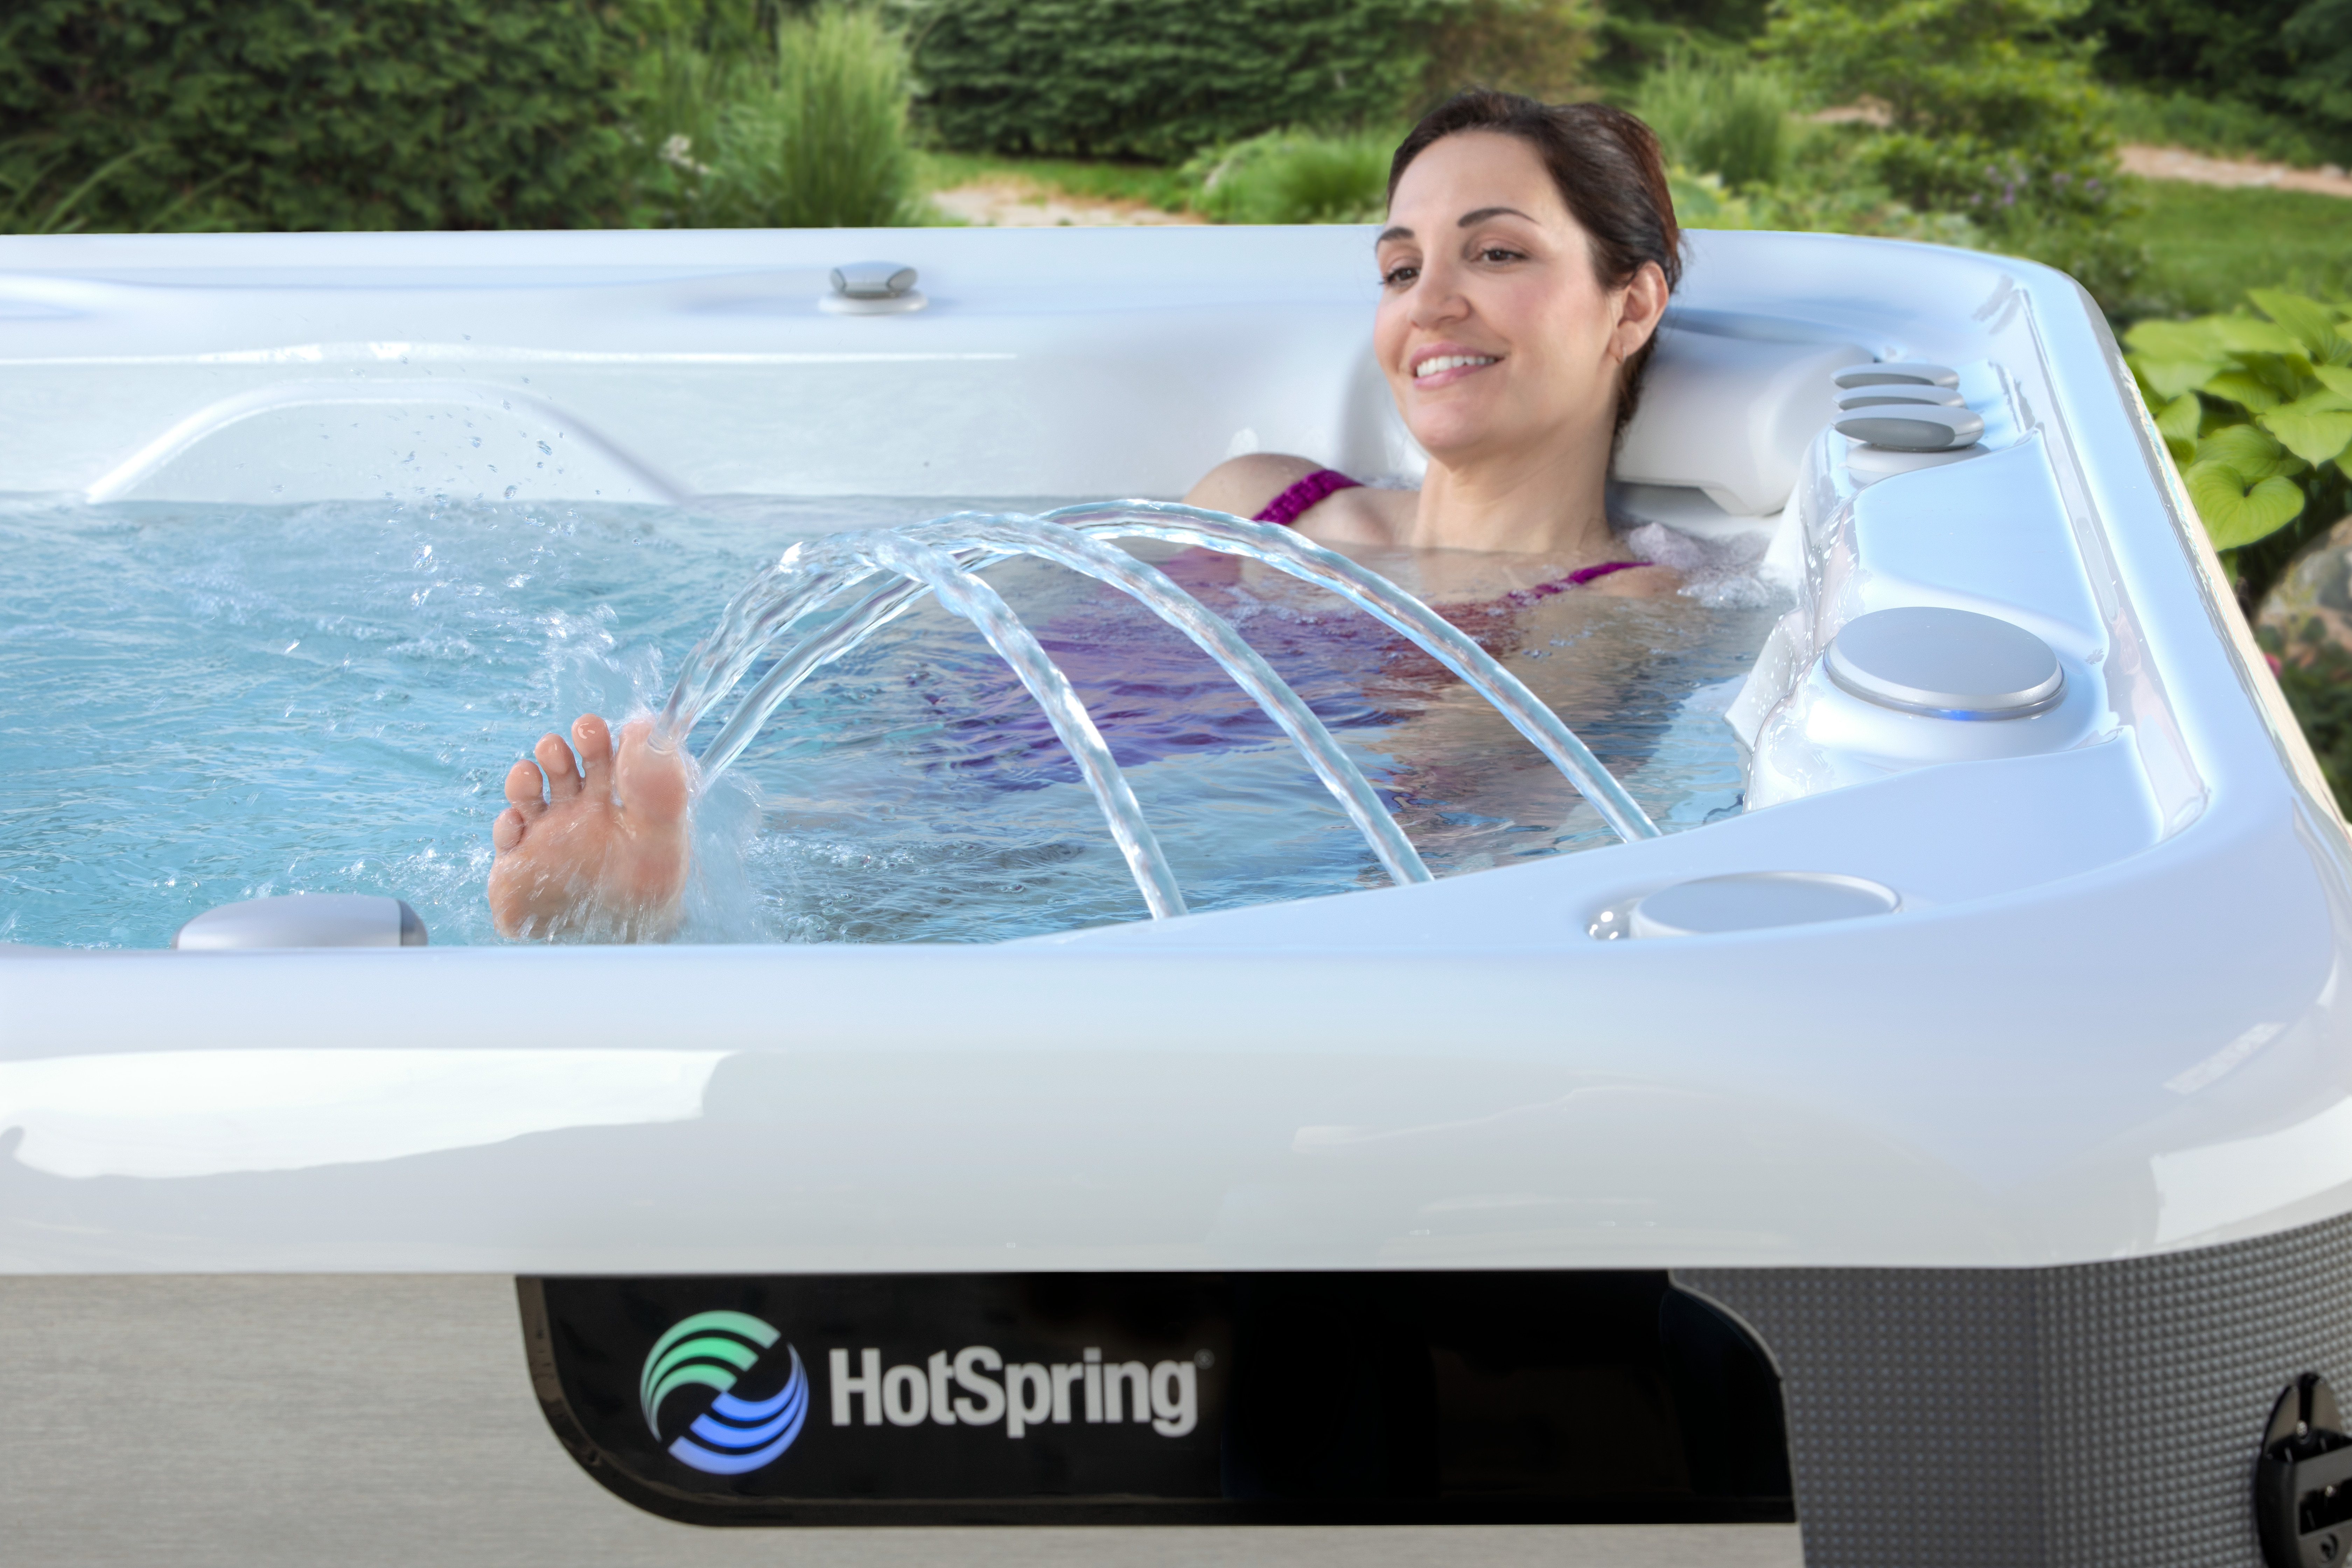 How Often Should I Use a Hot Tub?